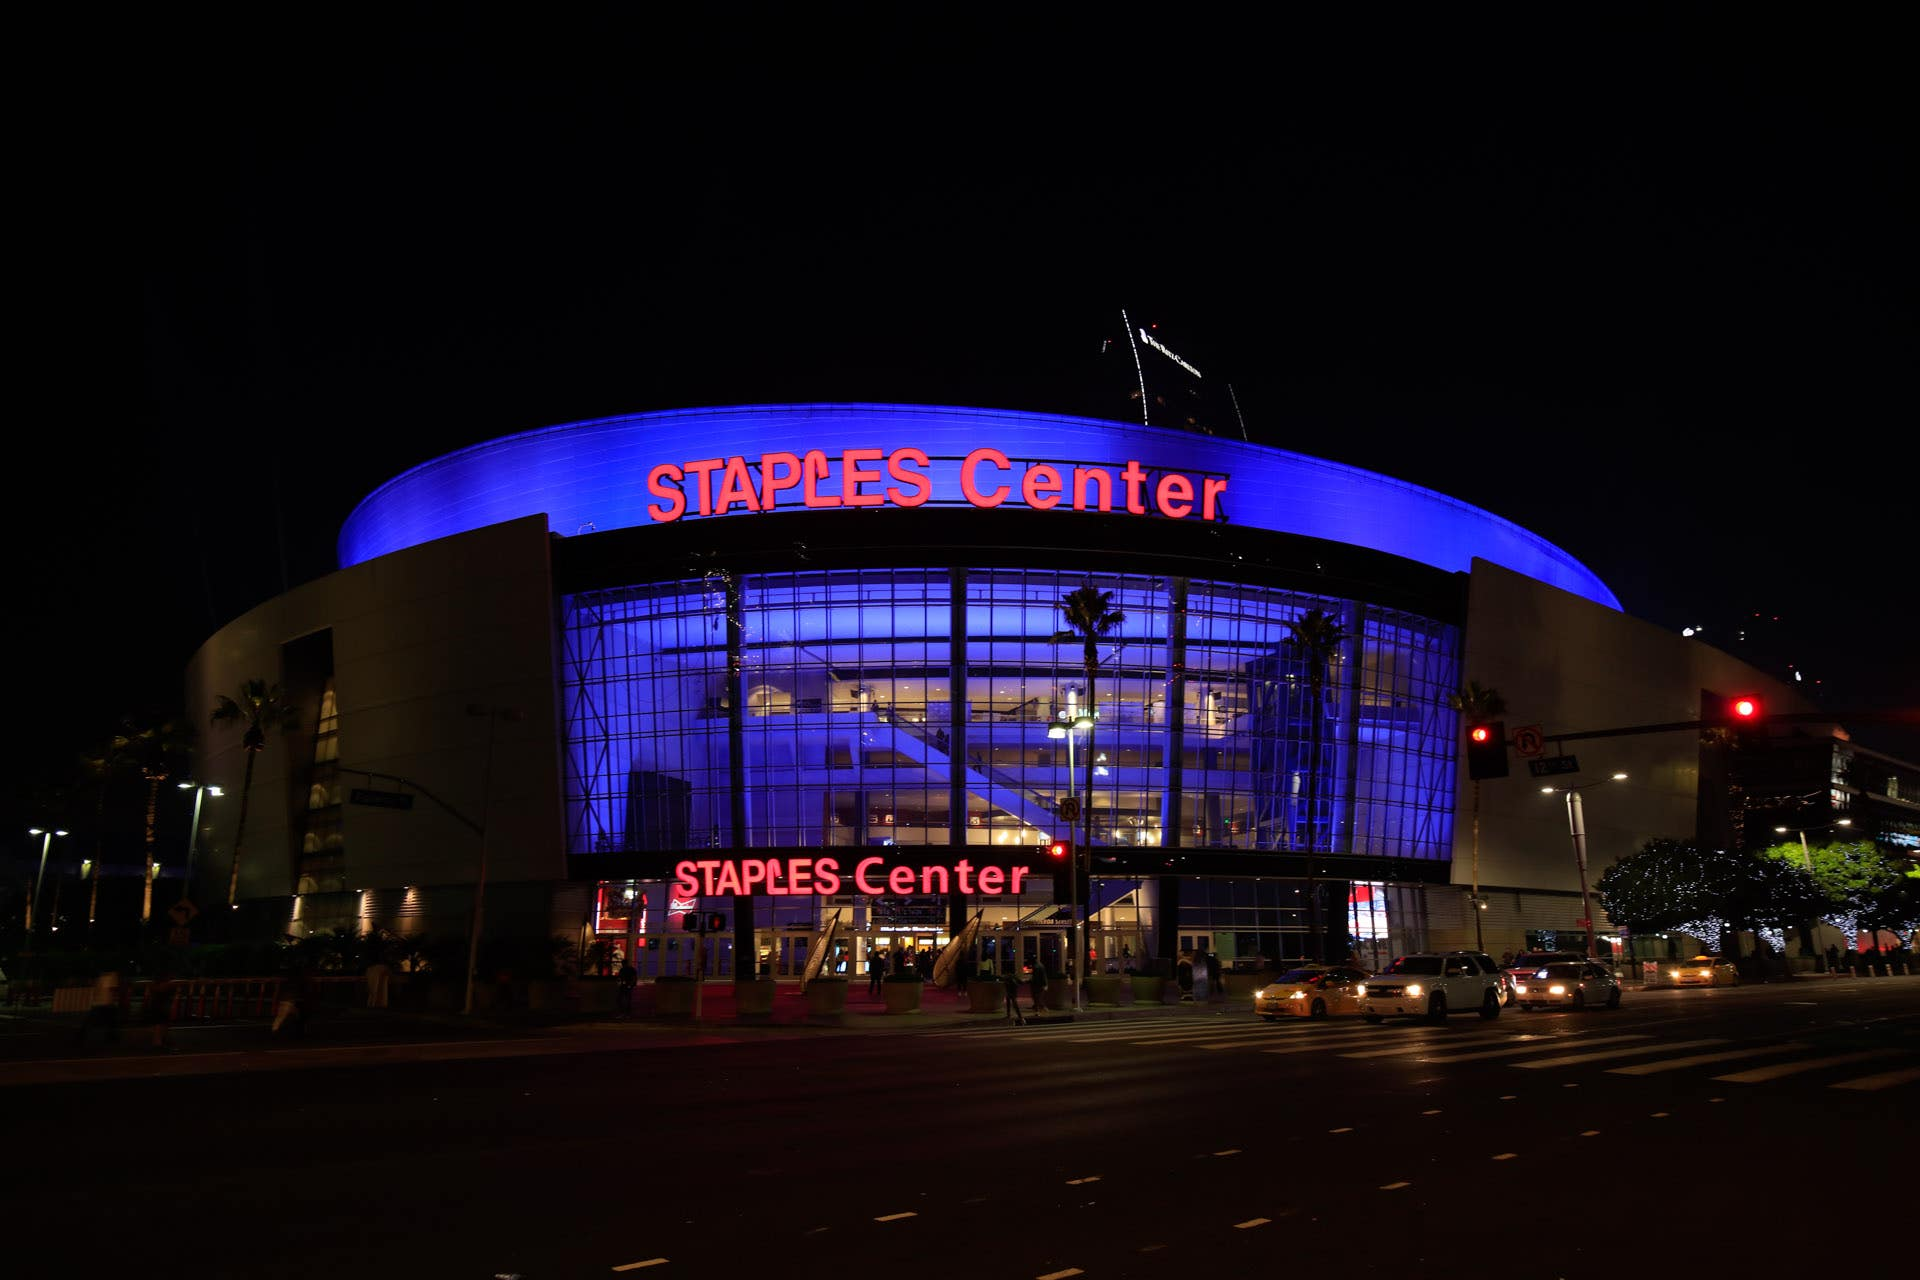 STAPLES Center Night